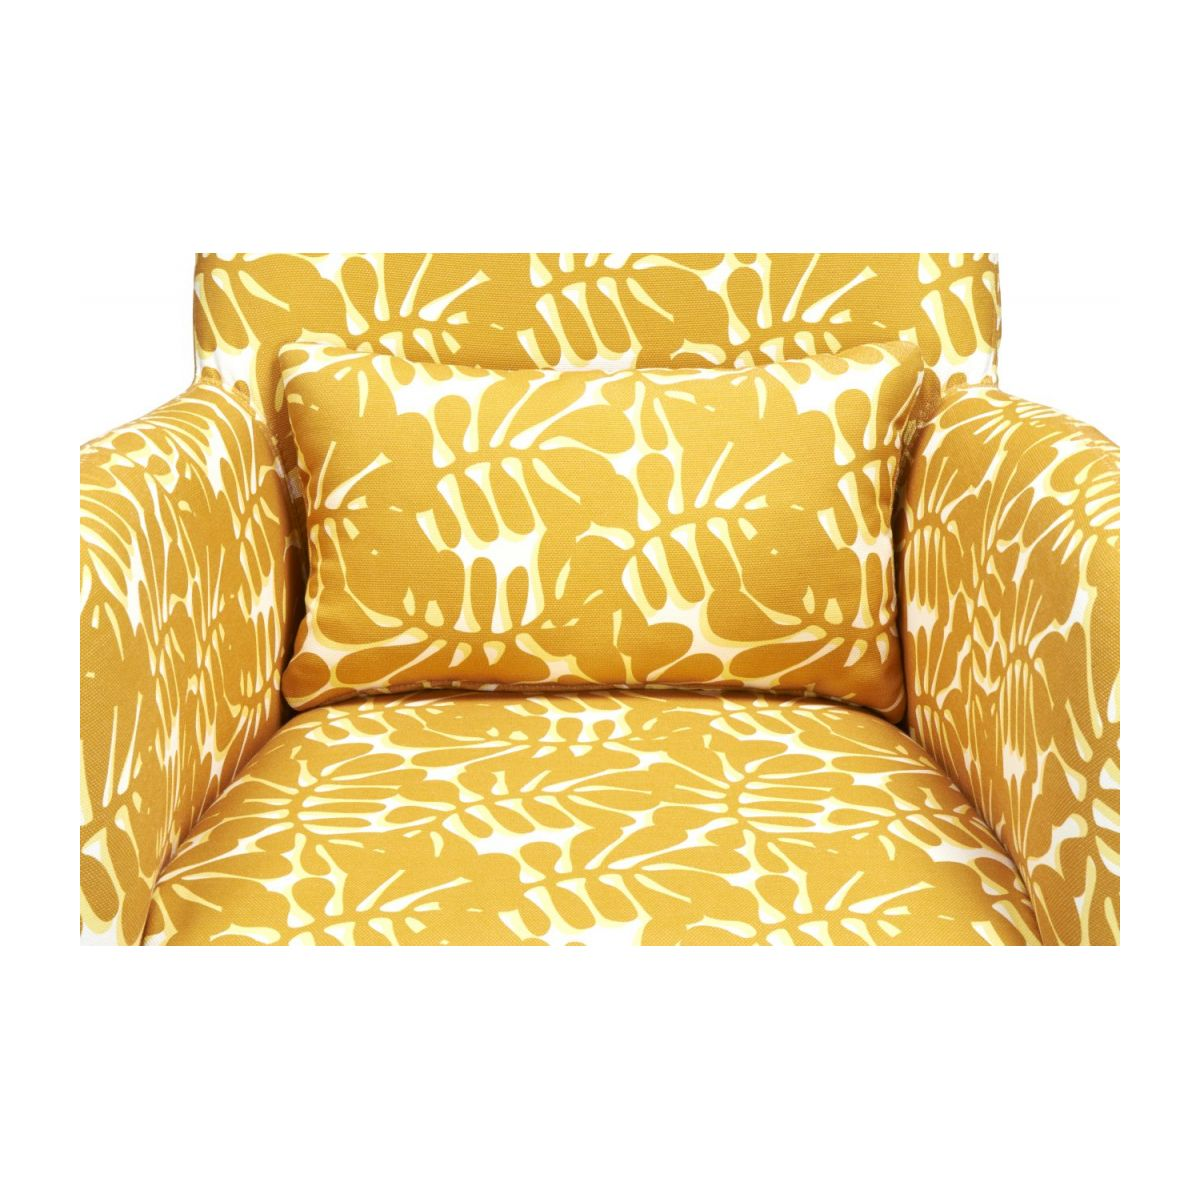 Armchair with yellow patterns n°7